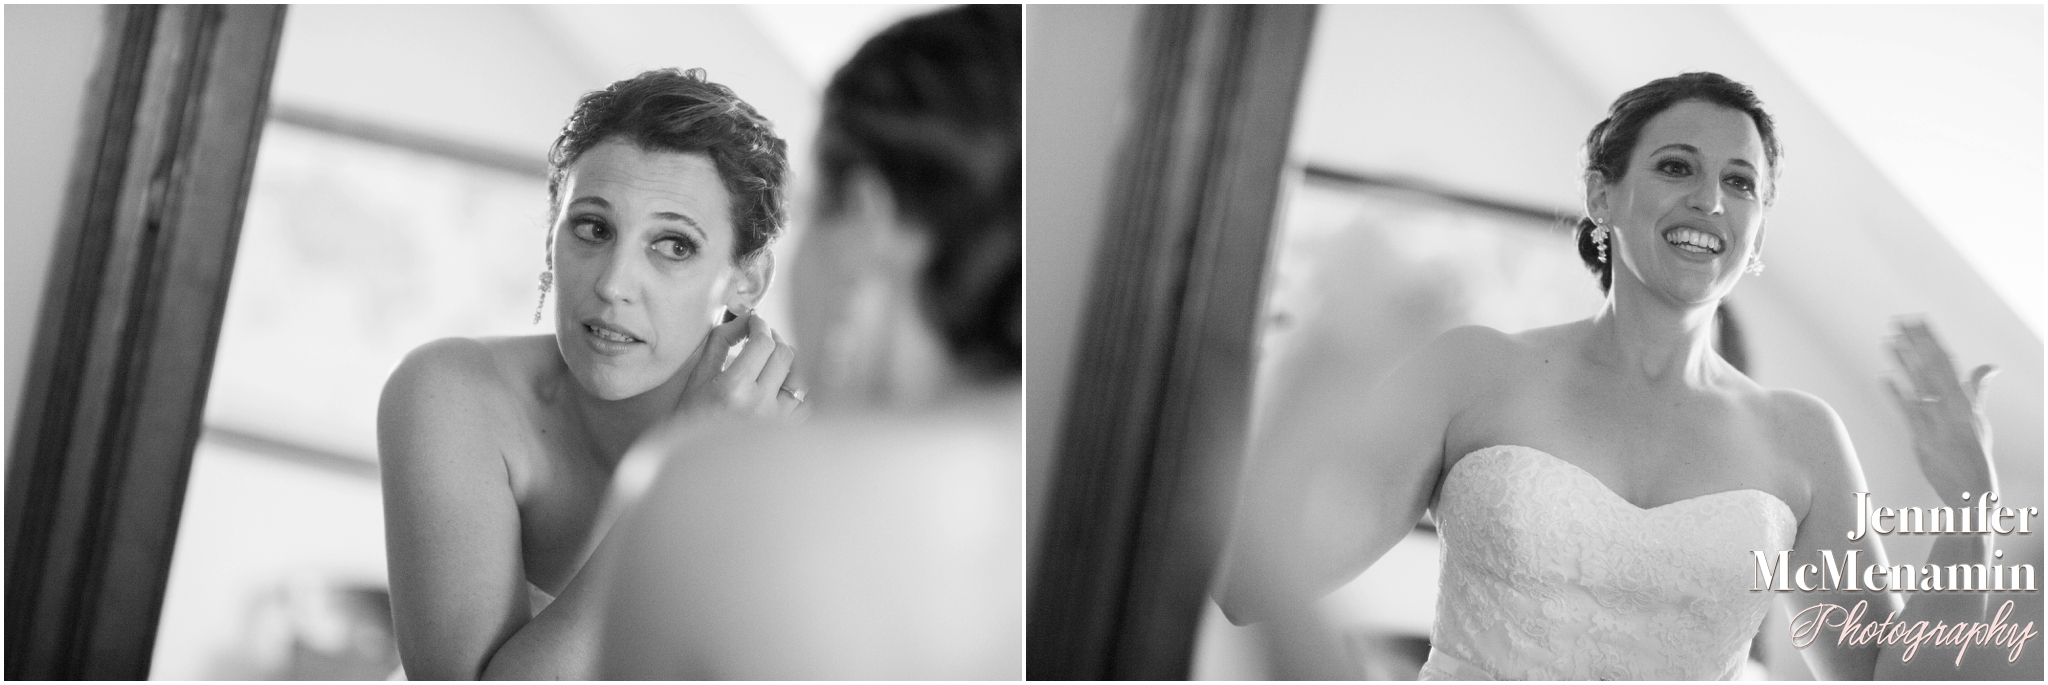 014-HenningMiller_00494bw-0090_JenniferMcMenaminPhotography_Evergreen-Museum-And-Carriage-House_Evergreen-wedding_Baltimore-wedding-photographer_Baltimore-wedding-photography